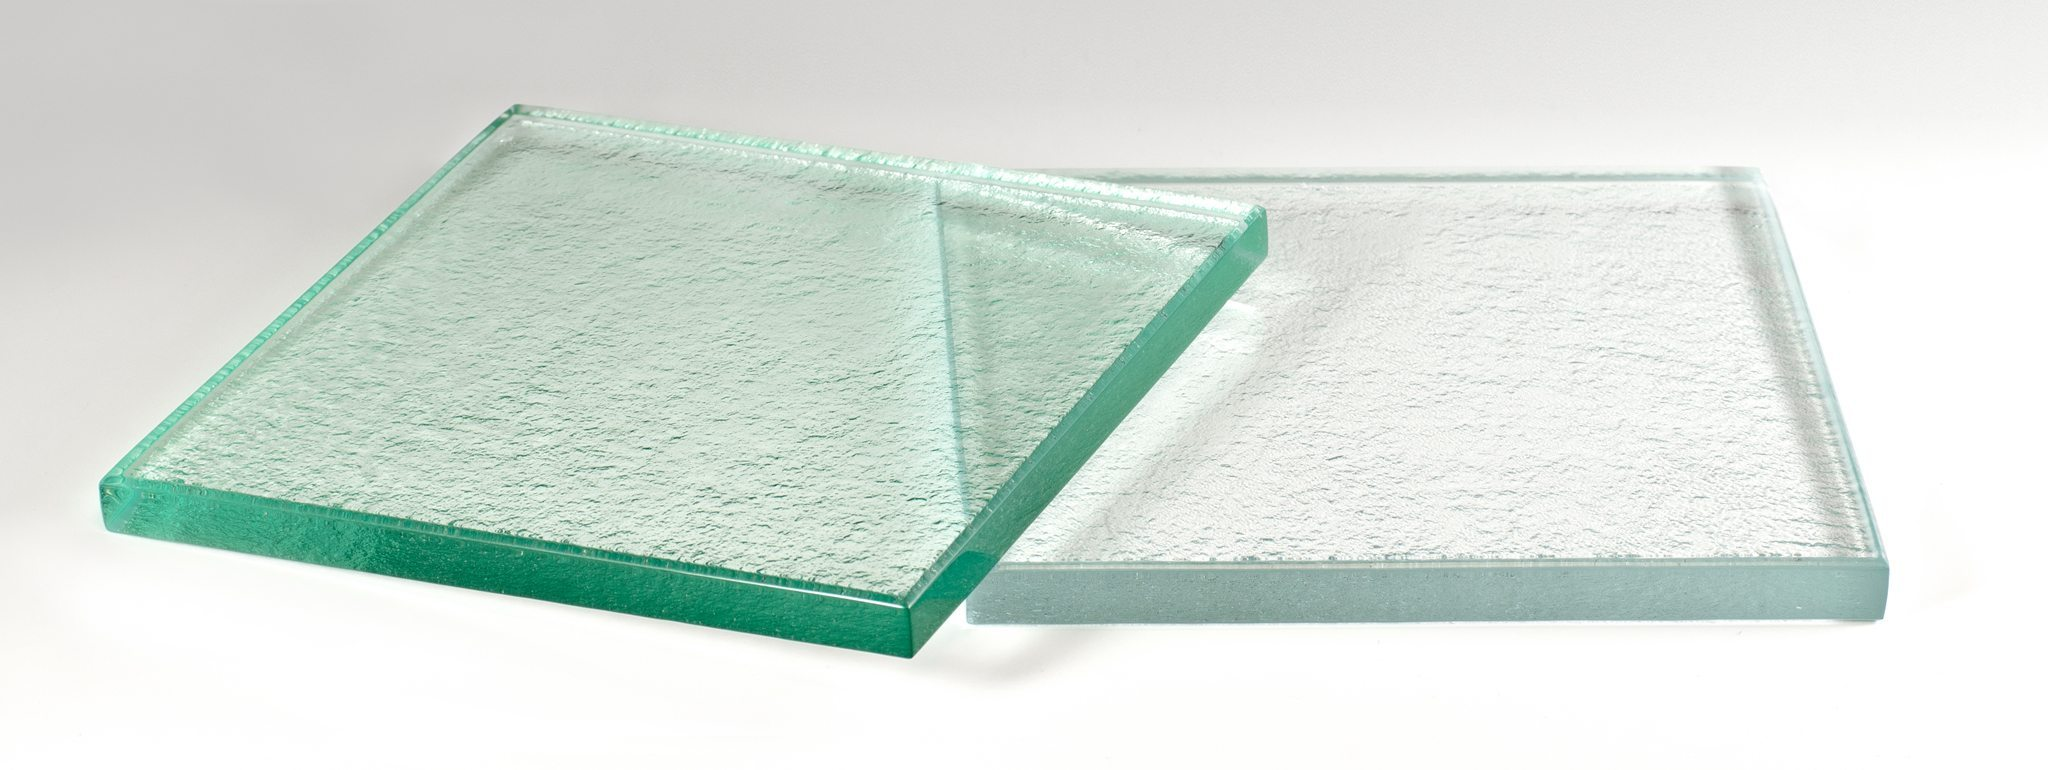 Find out more about the glass types available at nathan allan for Decorative window glass types